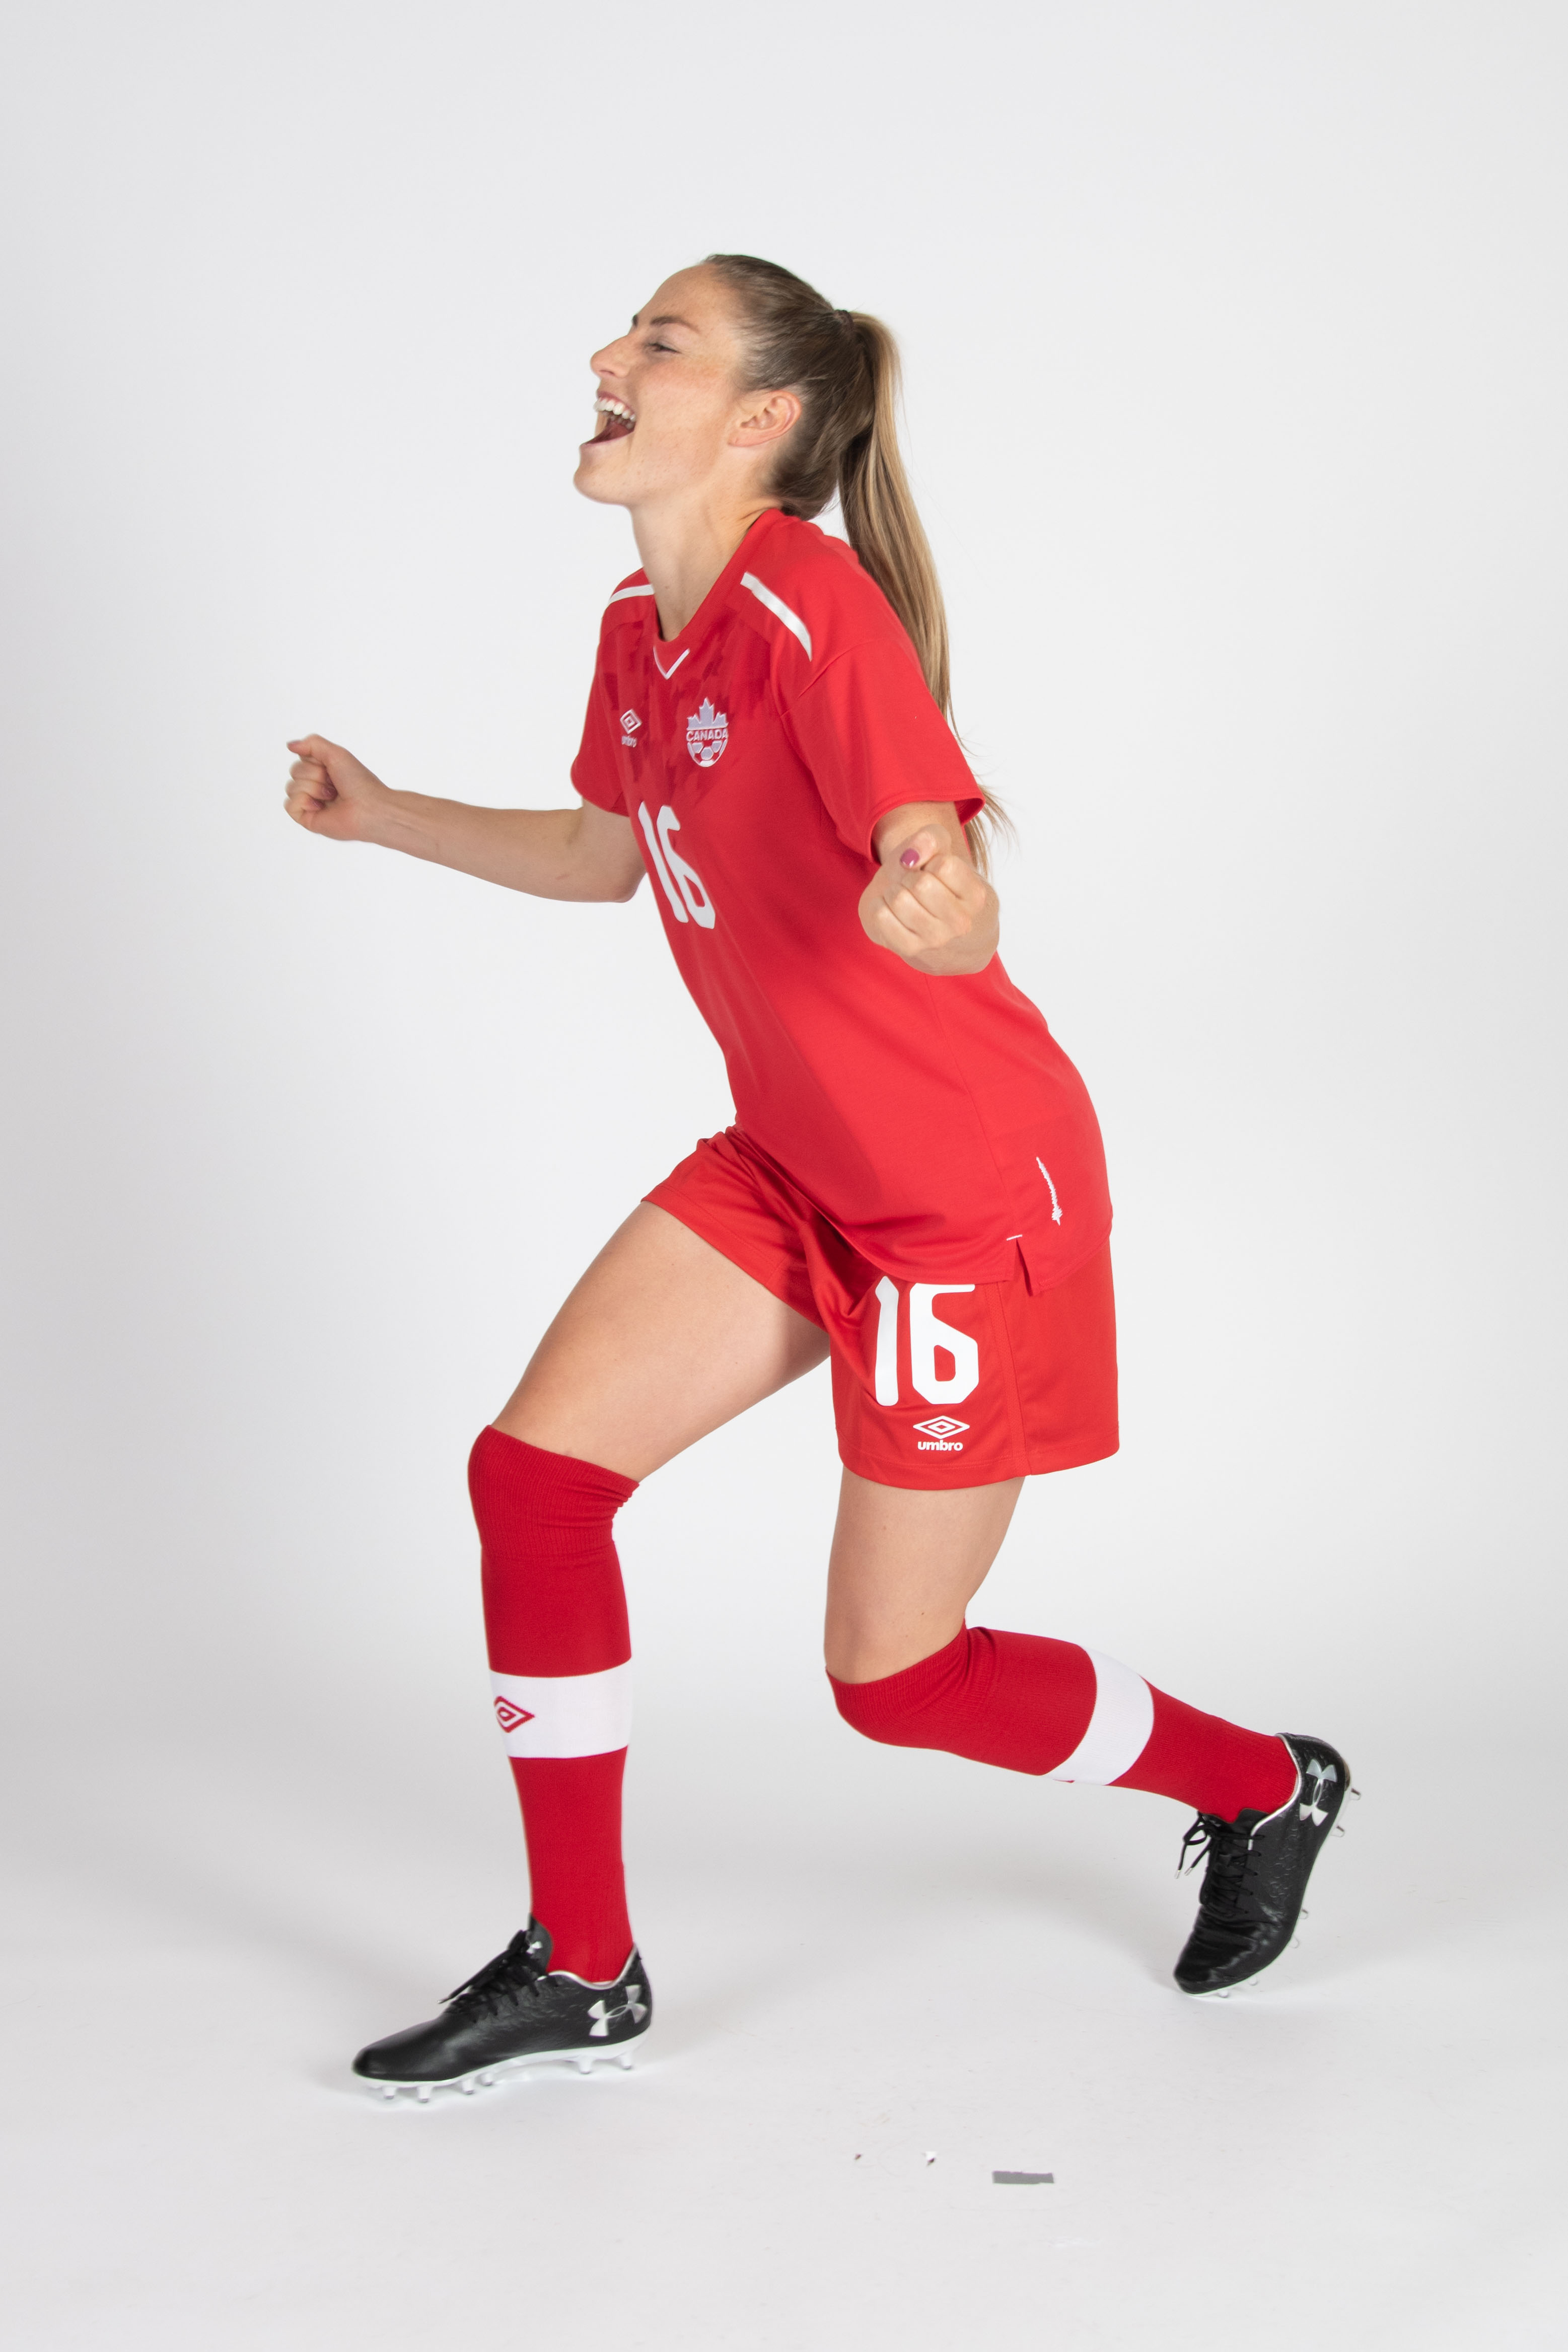 20180604_CANWNT_Beckie_byBazyl36